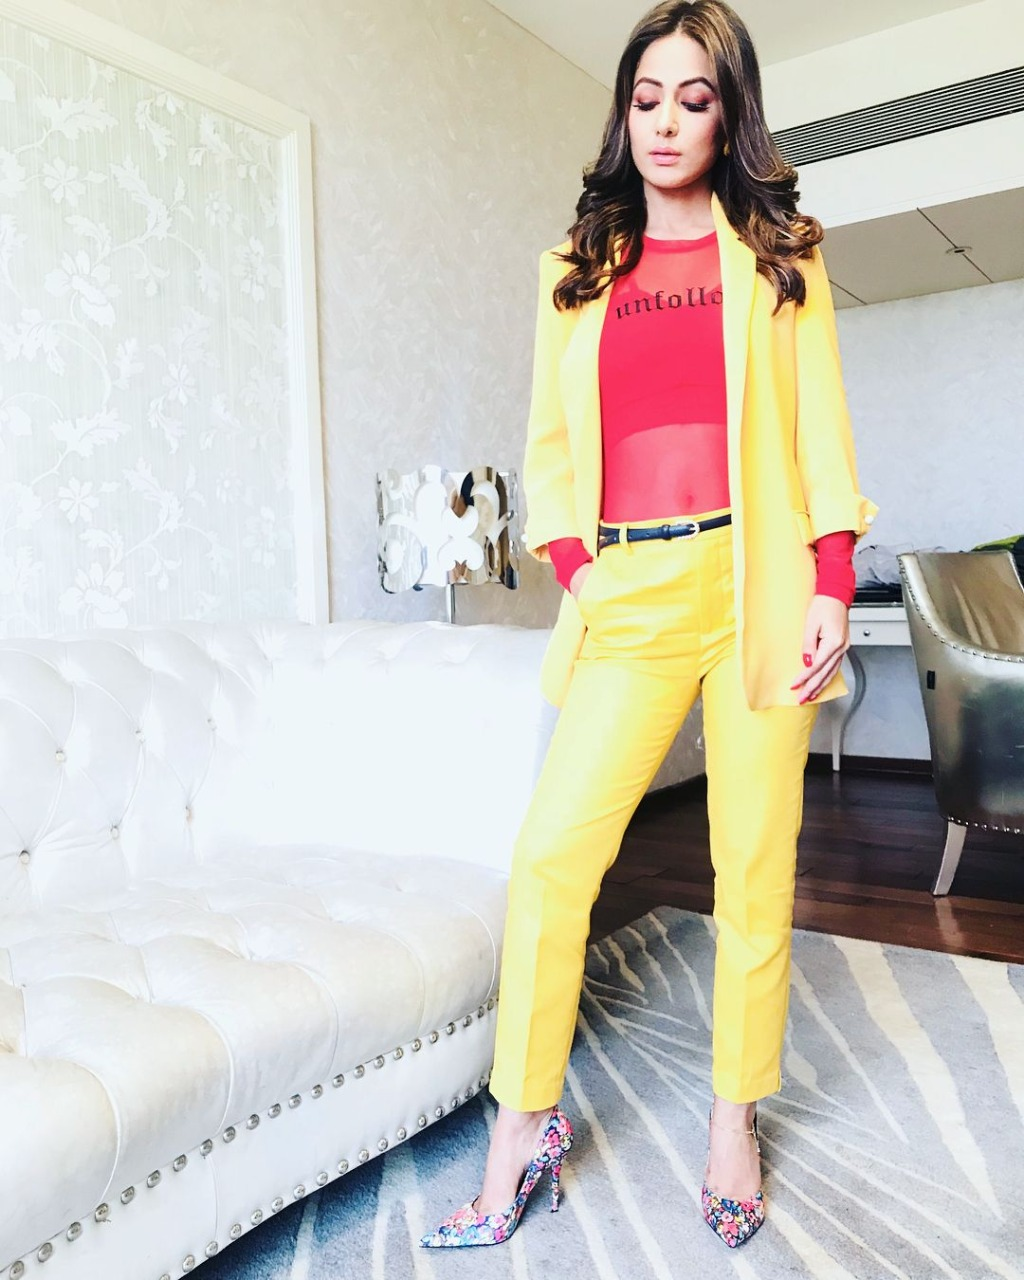 Hina Khan, Niti Taylor, Surbhi Chandna: Who Wore Cropped Pants Better? 1